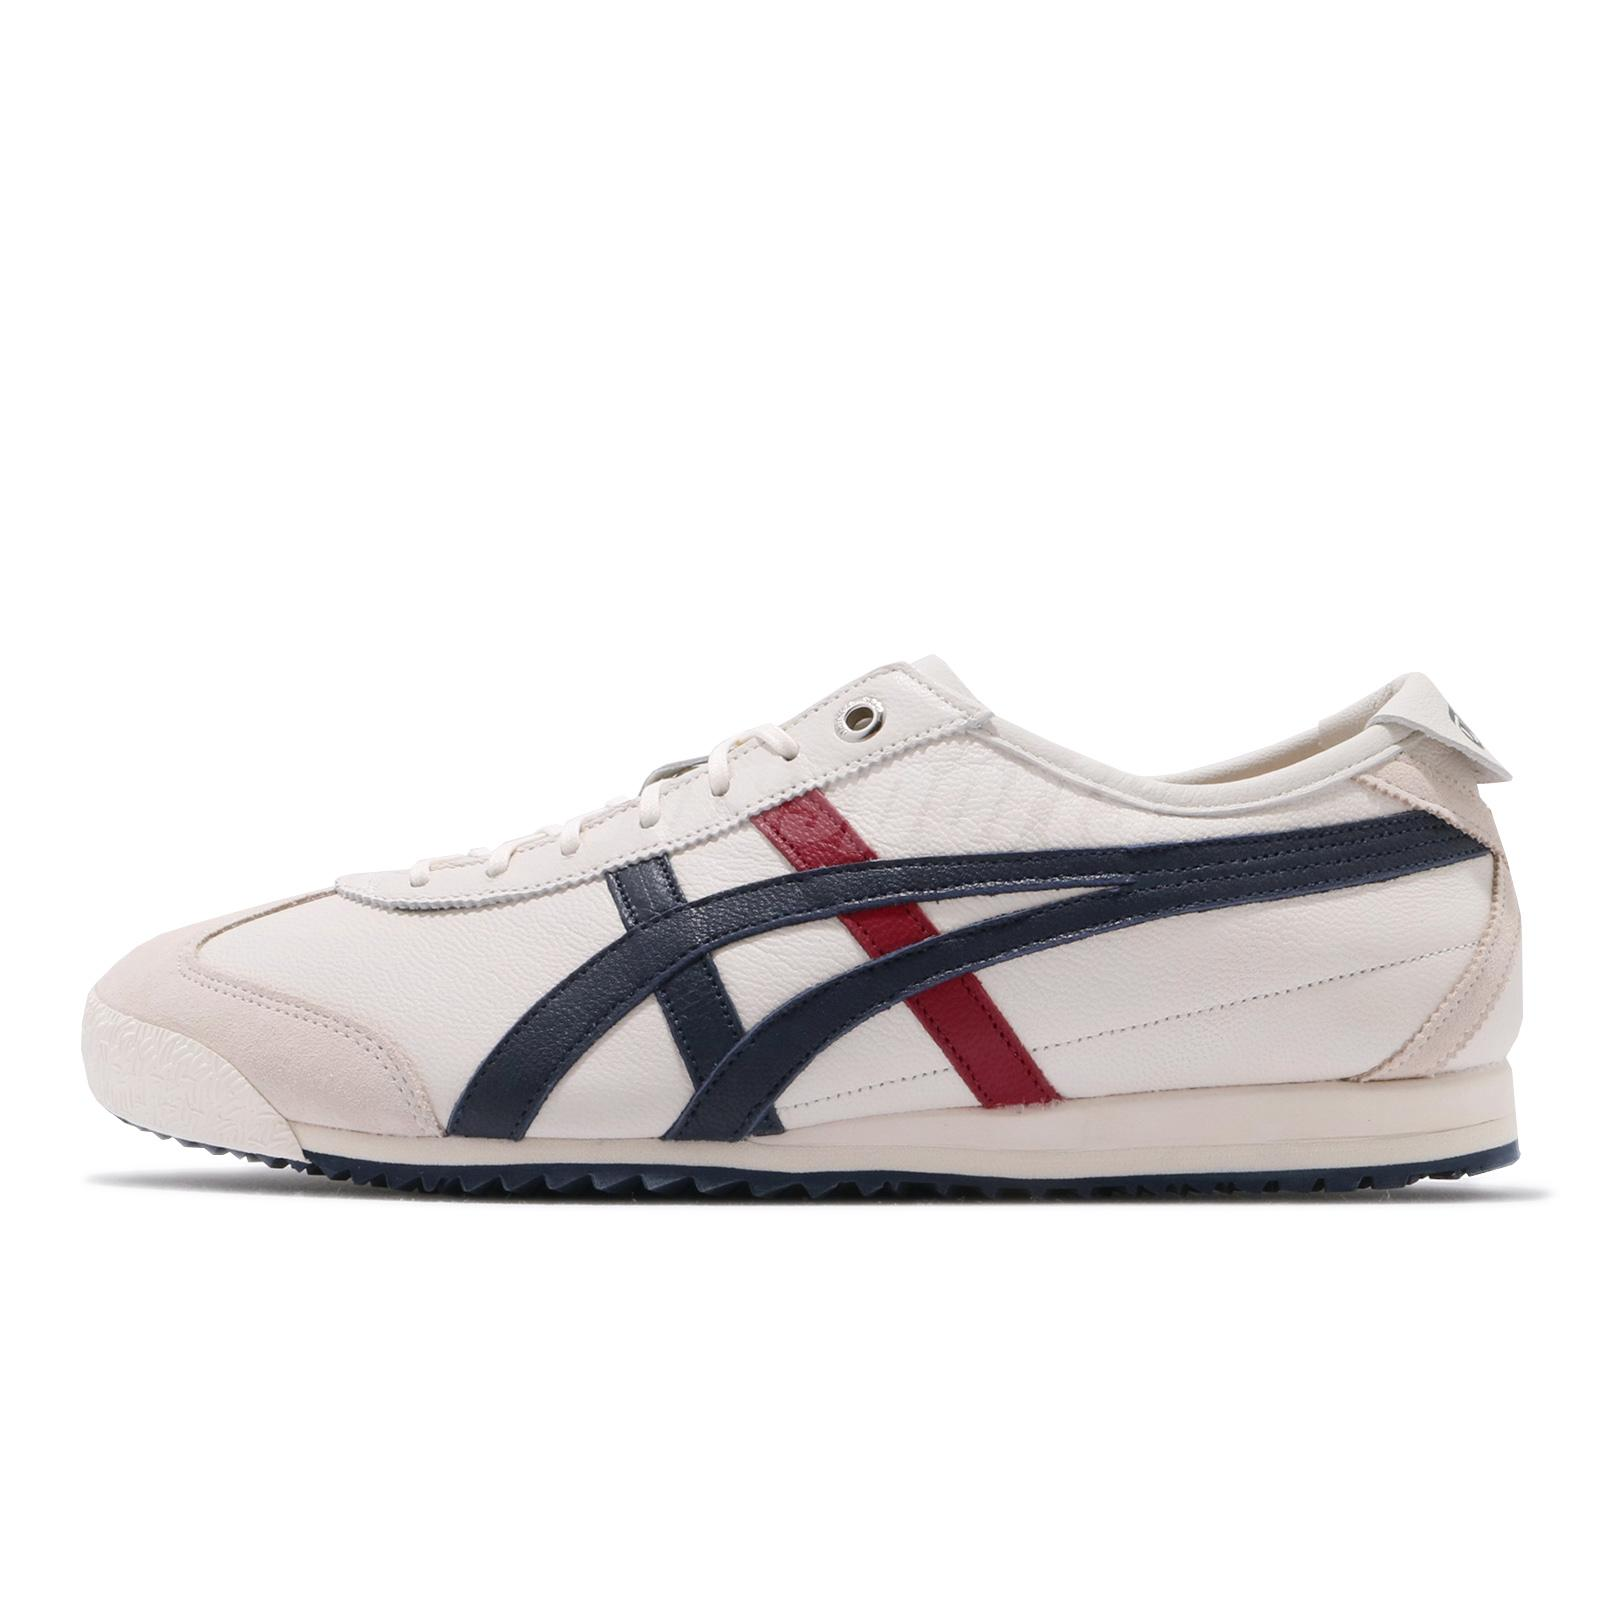 onitsuka tiger mexico 66 sd philippines white hombre